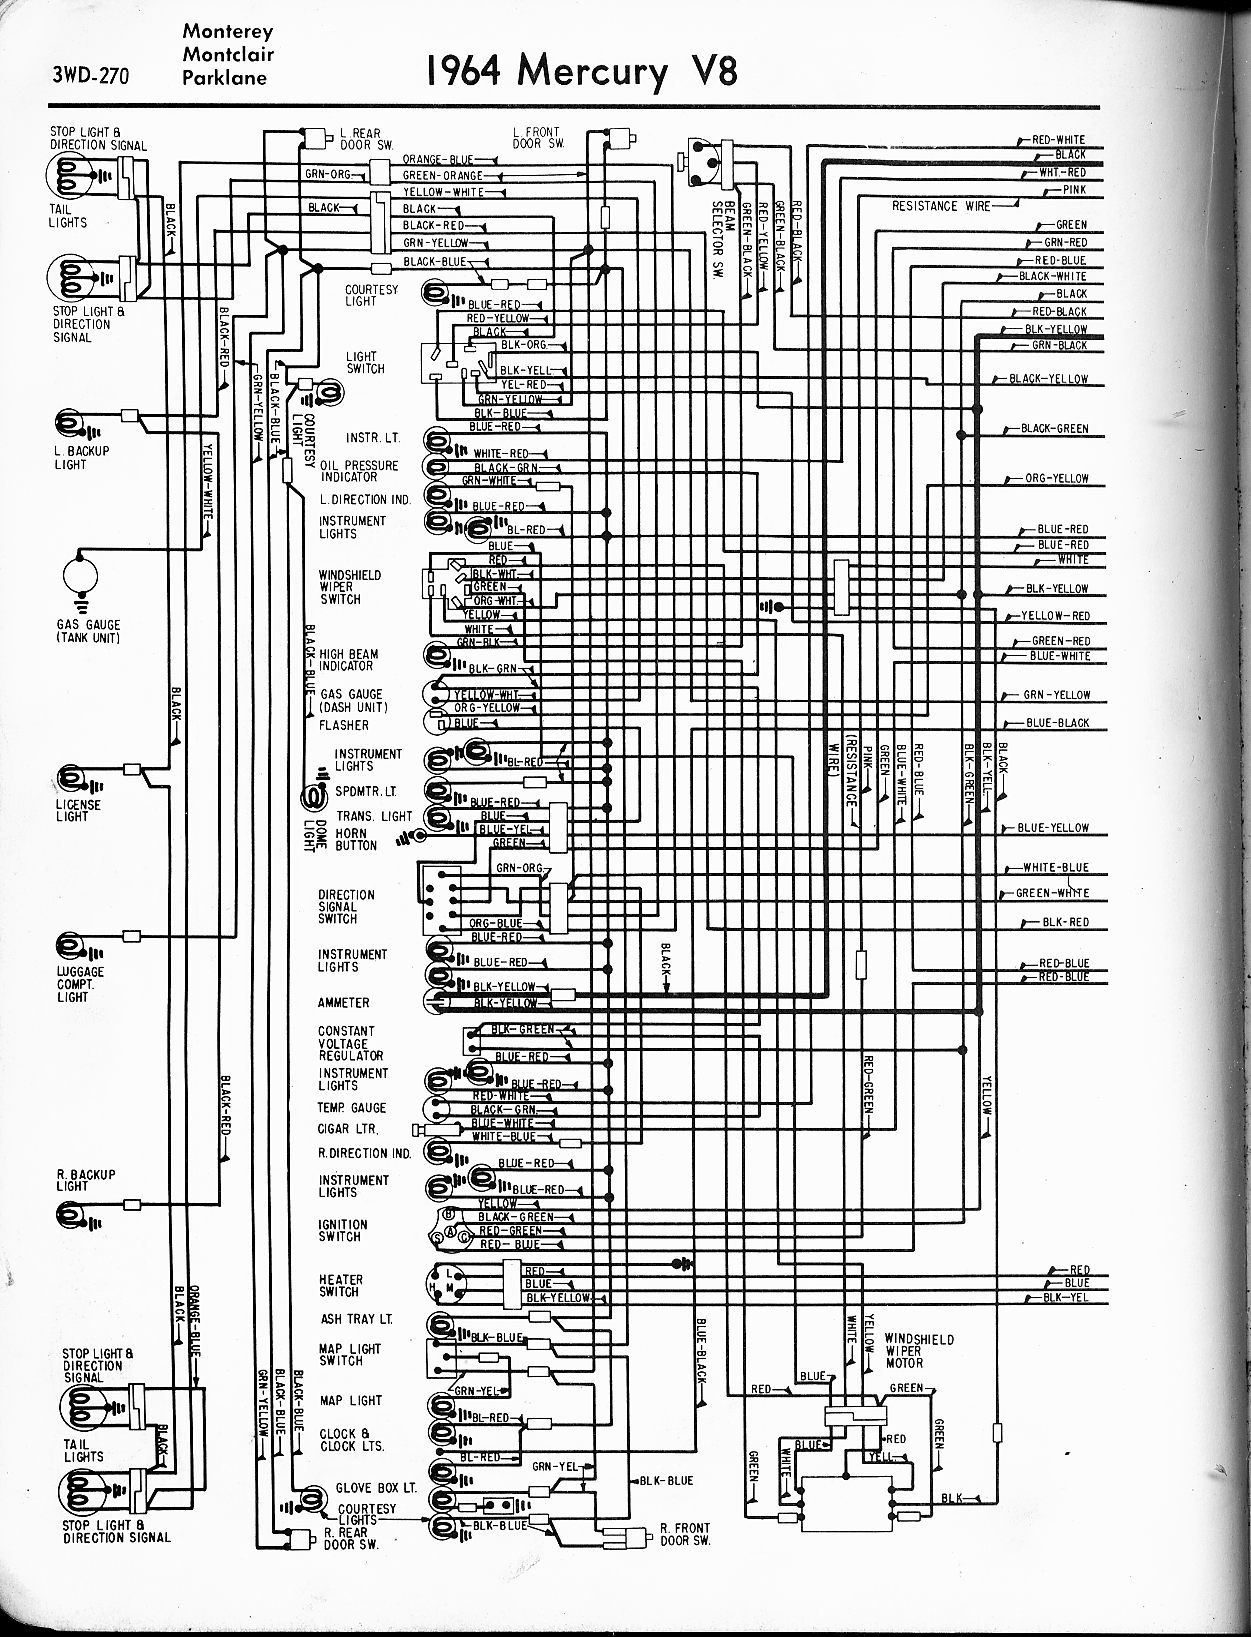 Wiring Diagram 1970 Pontiac Lemans Library 1965 1966 Mercury U2022 For Free Le Mans 1972